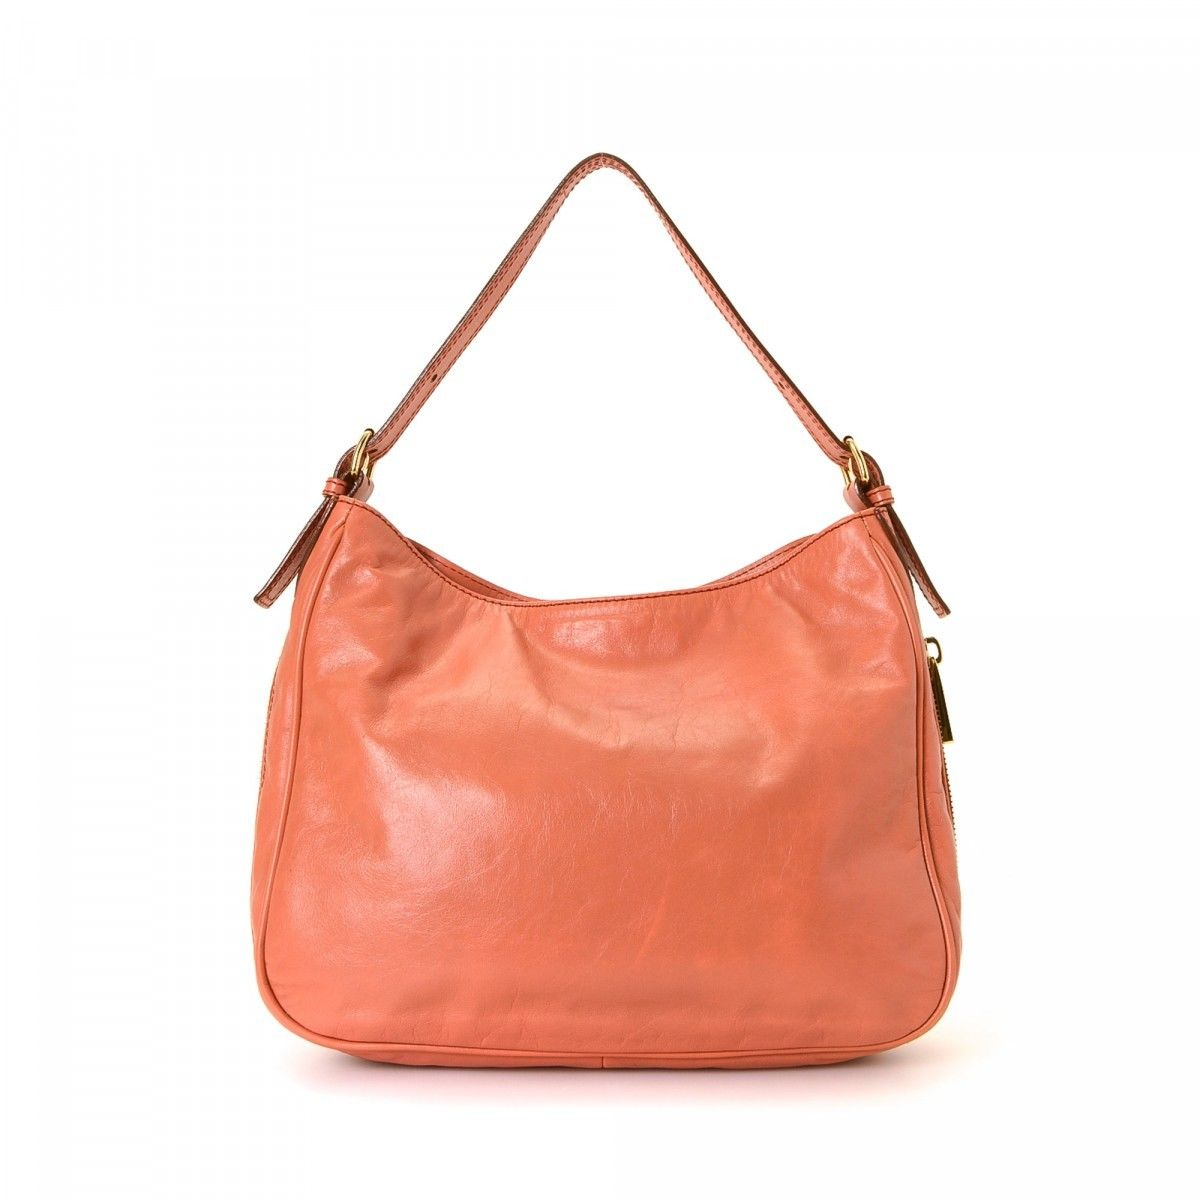 bb53c4b357a Marc Jacobs Shoulder Bag. LXRandCo guarantees the authenticity of this vintage  Marc Jacobs Blake ...